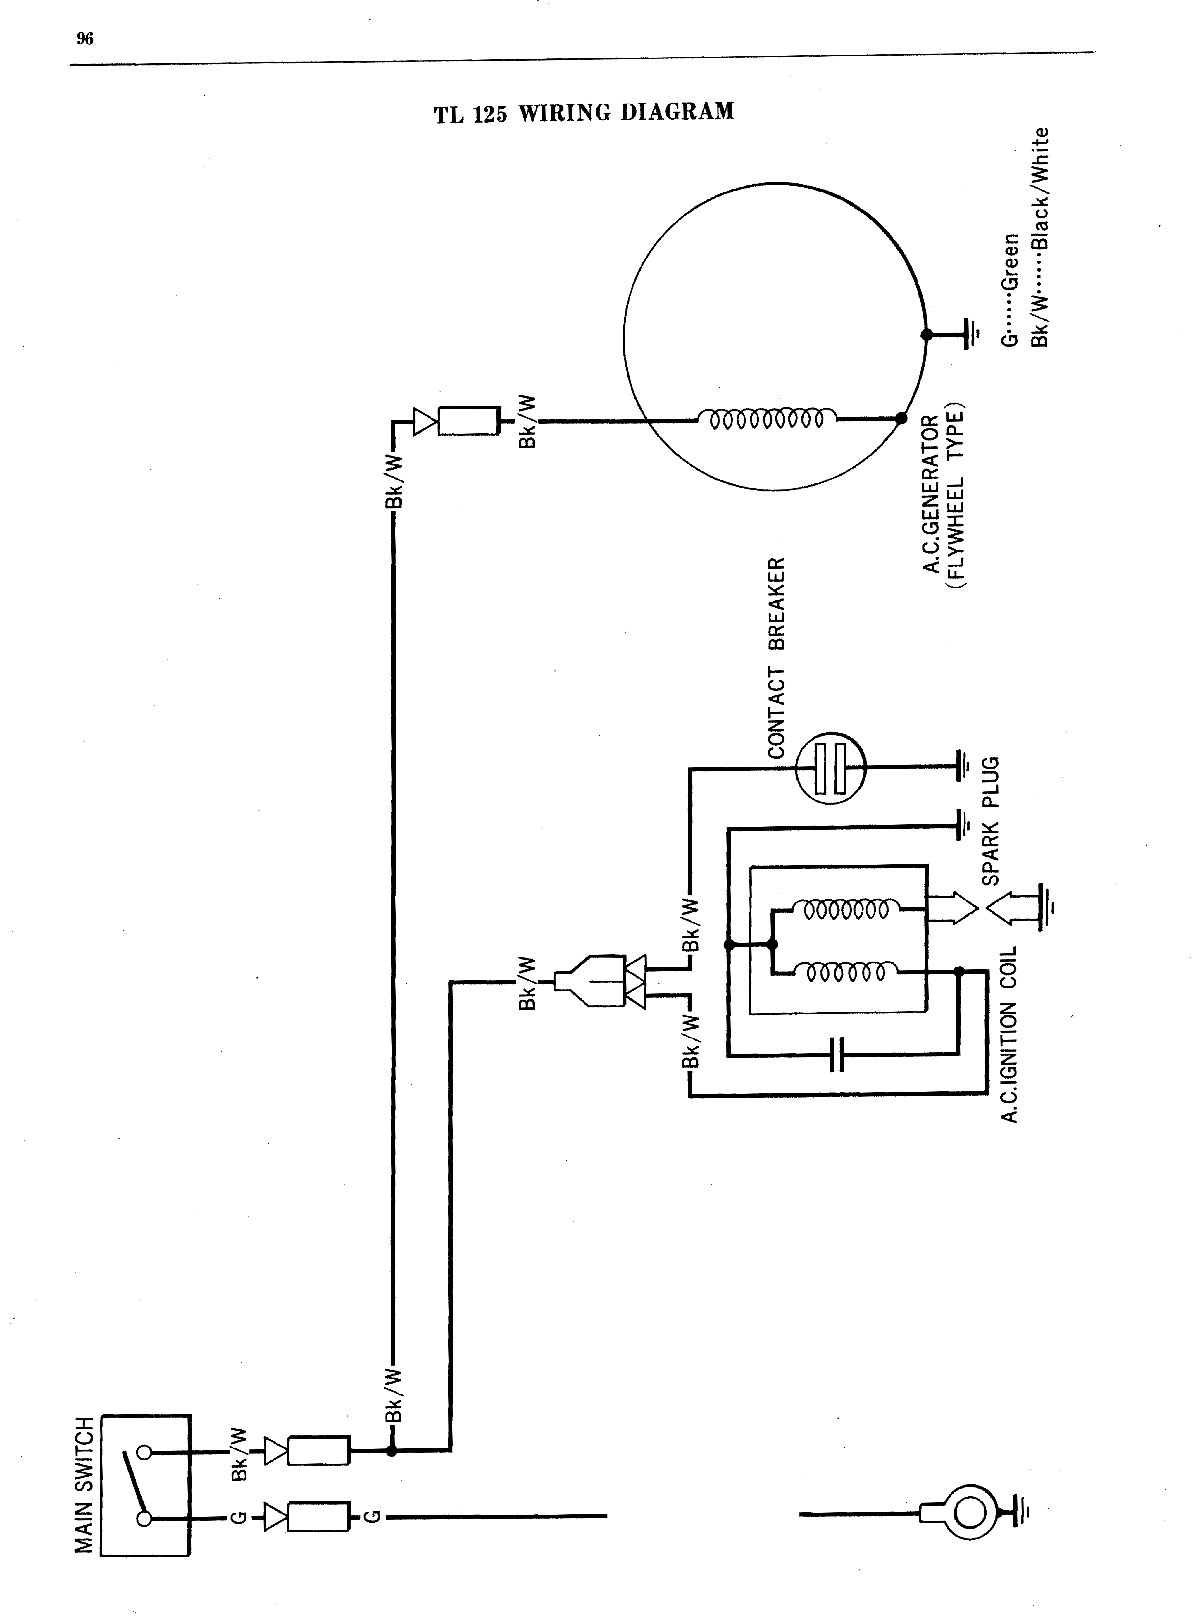 hight resolution of 2002 yamaha yz 125 wiring diagram wiring diagram world 2000 yz 125 wiring diagram